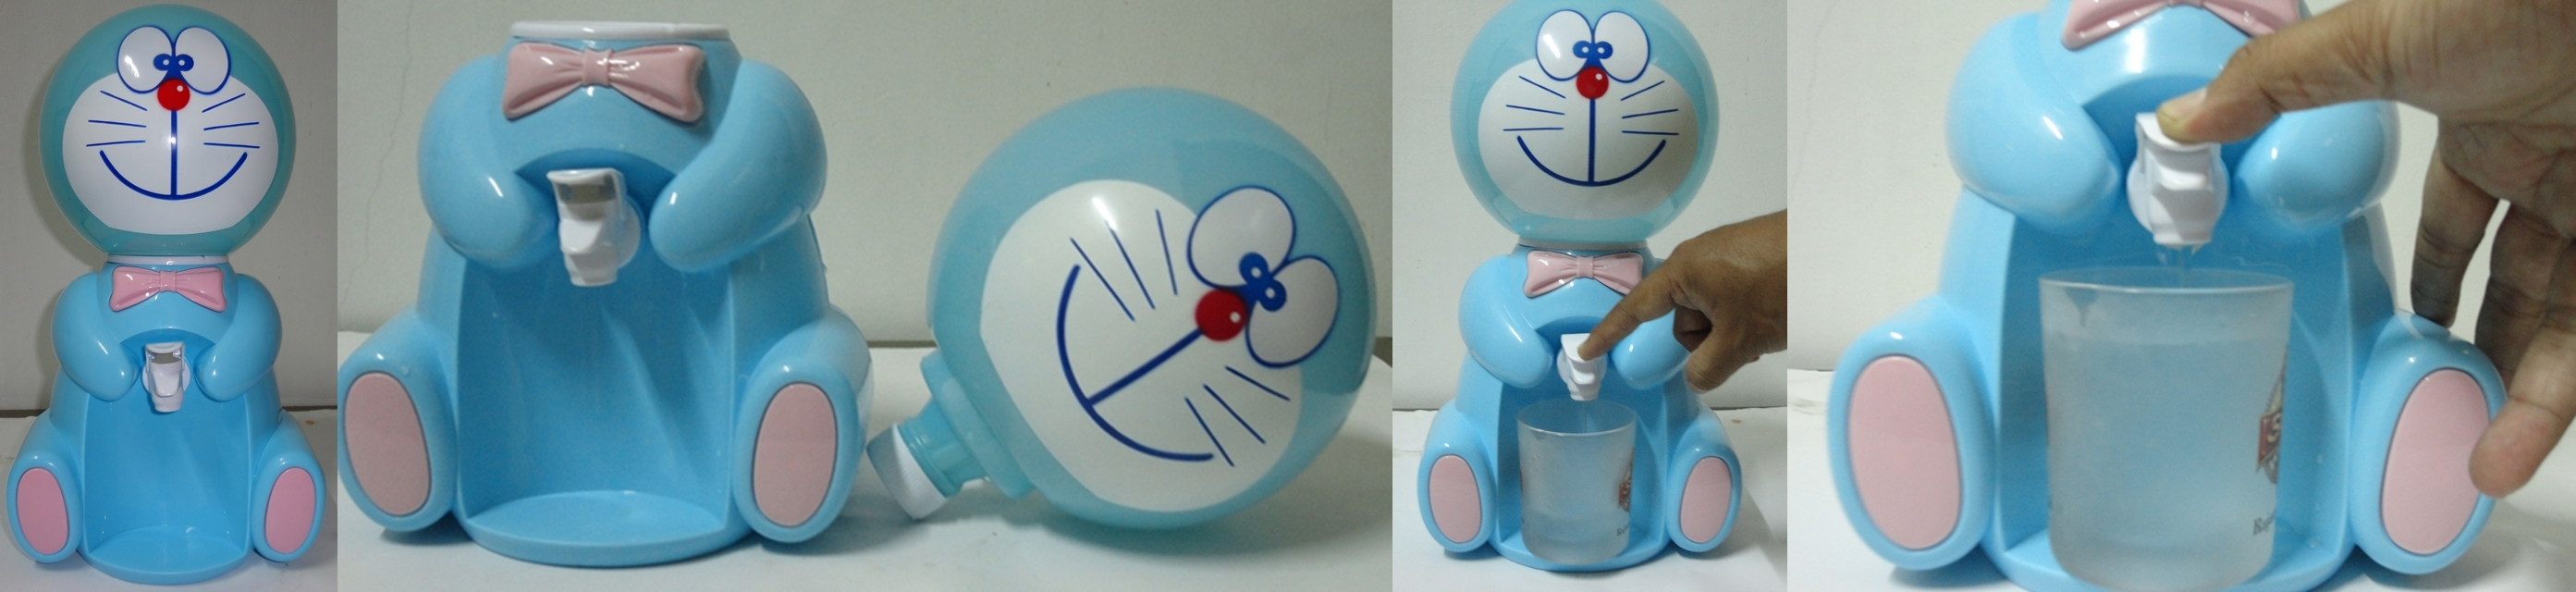 dispenser karakter kartun.doraemon